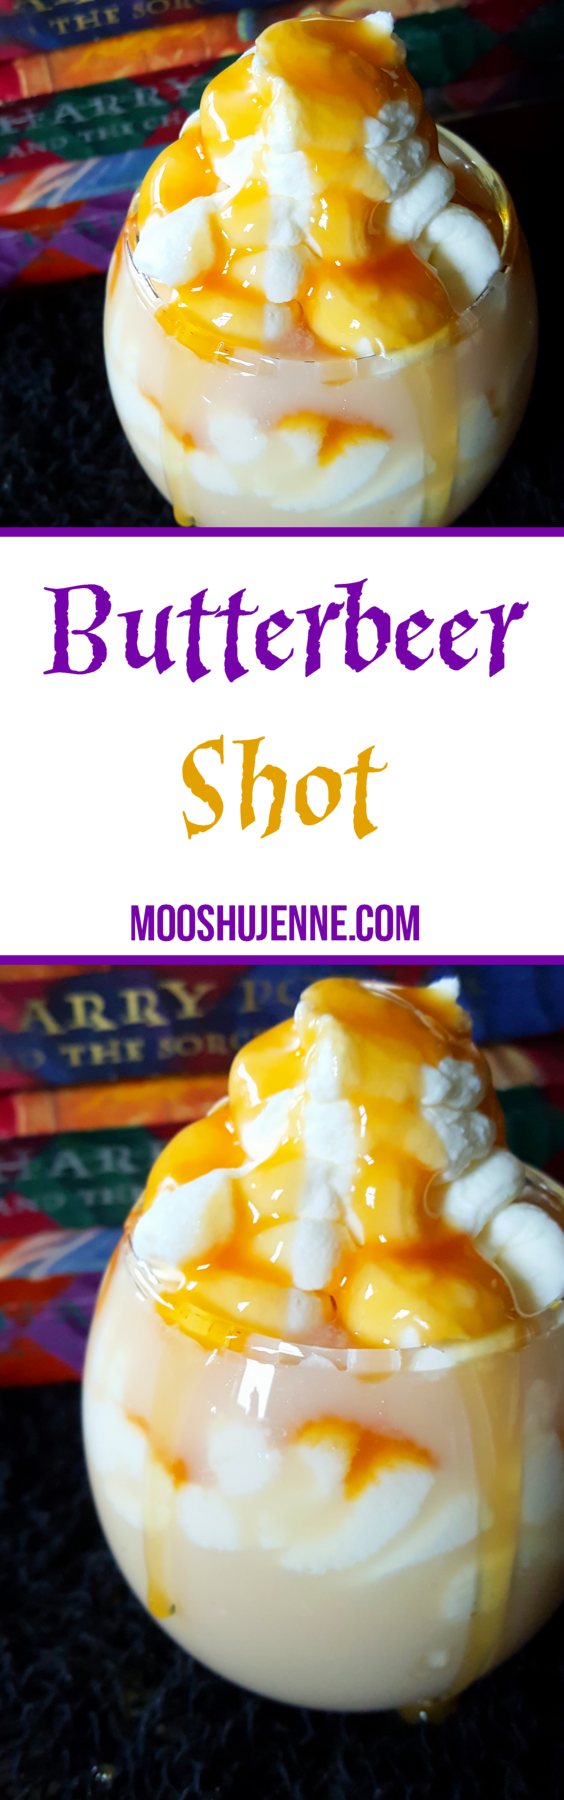 The key point to a good Butterbeer is that butterscotch flavor. Here I tried to accompany that with butterscotch schnapps. For the cream taste I used a cinnamon horchata which works really well. Then we use caramel and whipped topping for that height and look of Butterbeer.